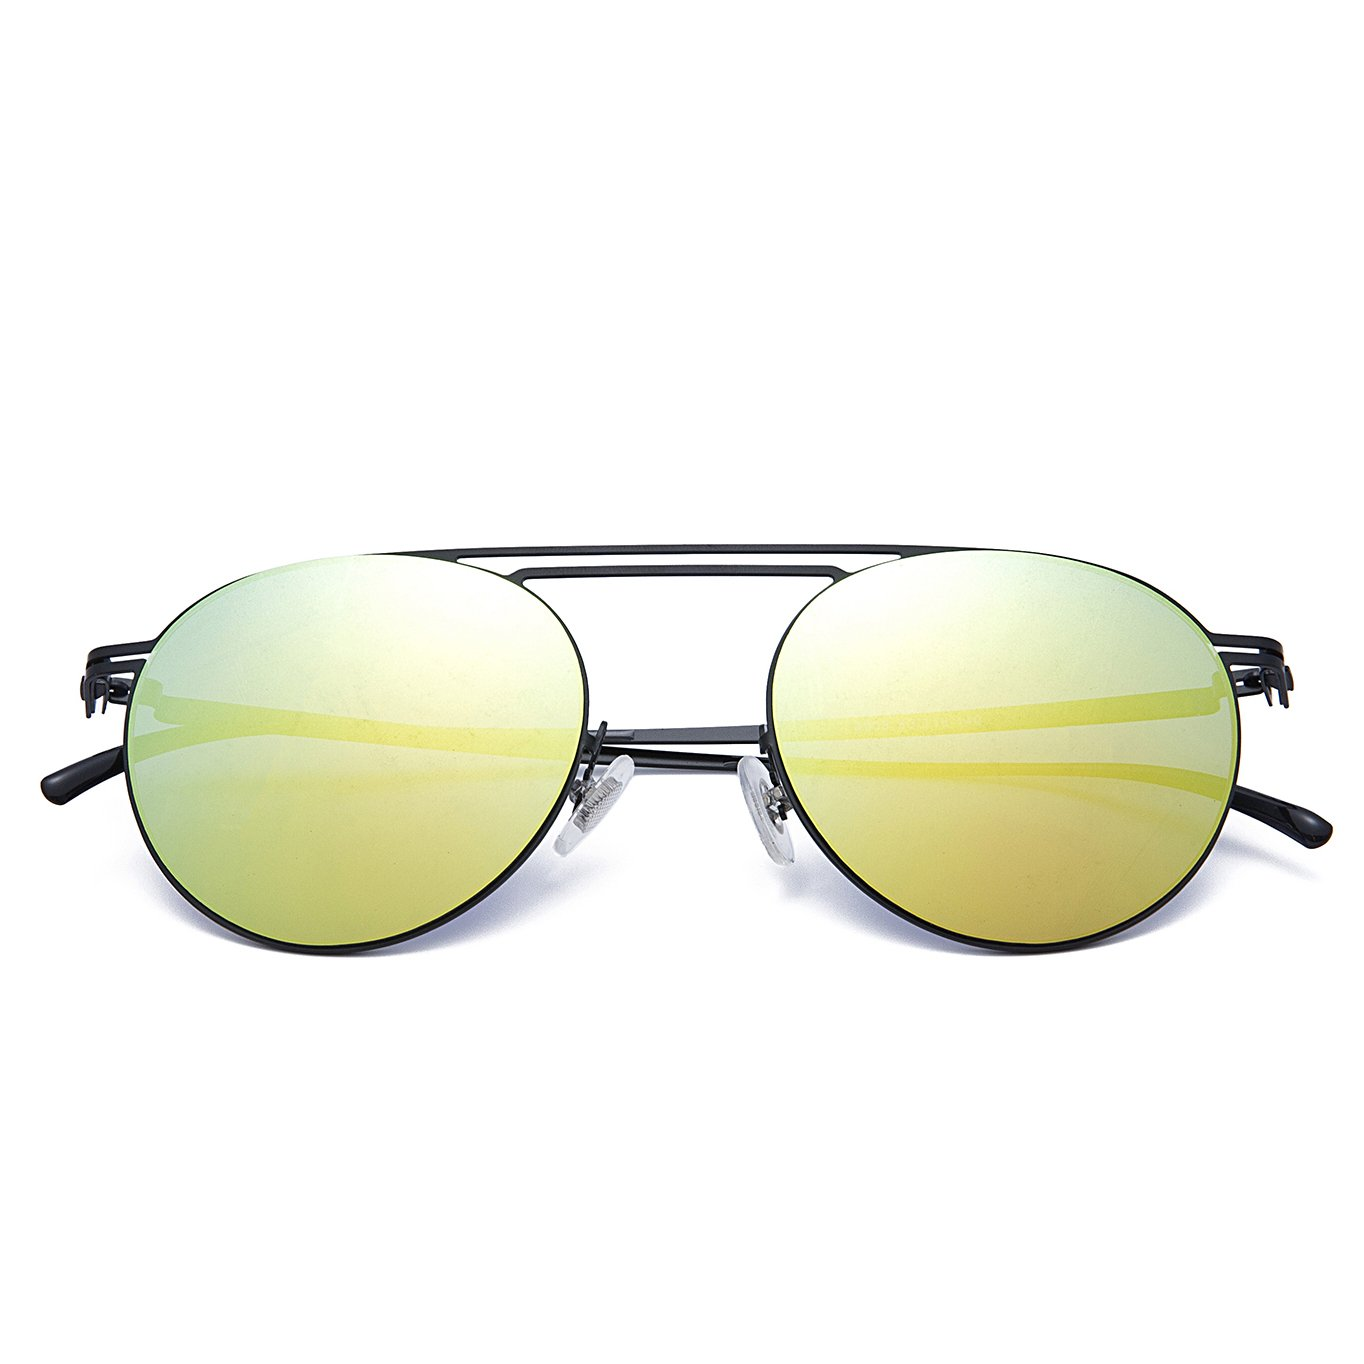 Round Fashion Metal Frame Sunglasses for men women, Sun Glasses Shades with Uv400 (yellow)